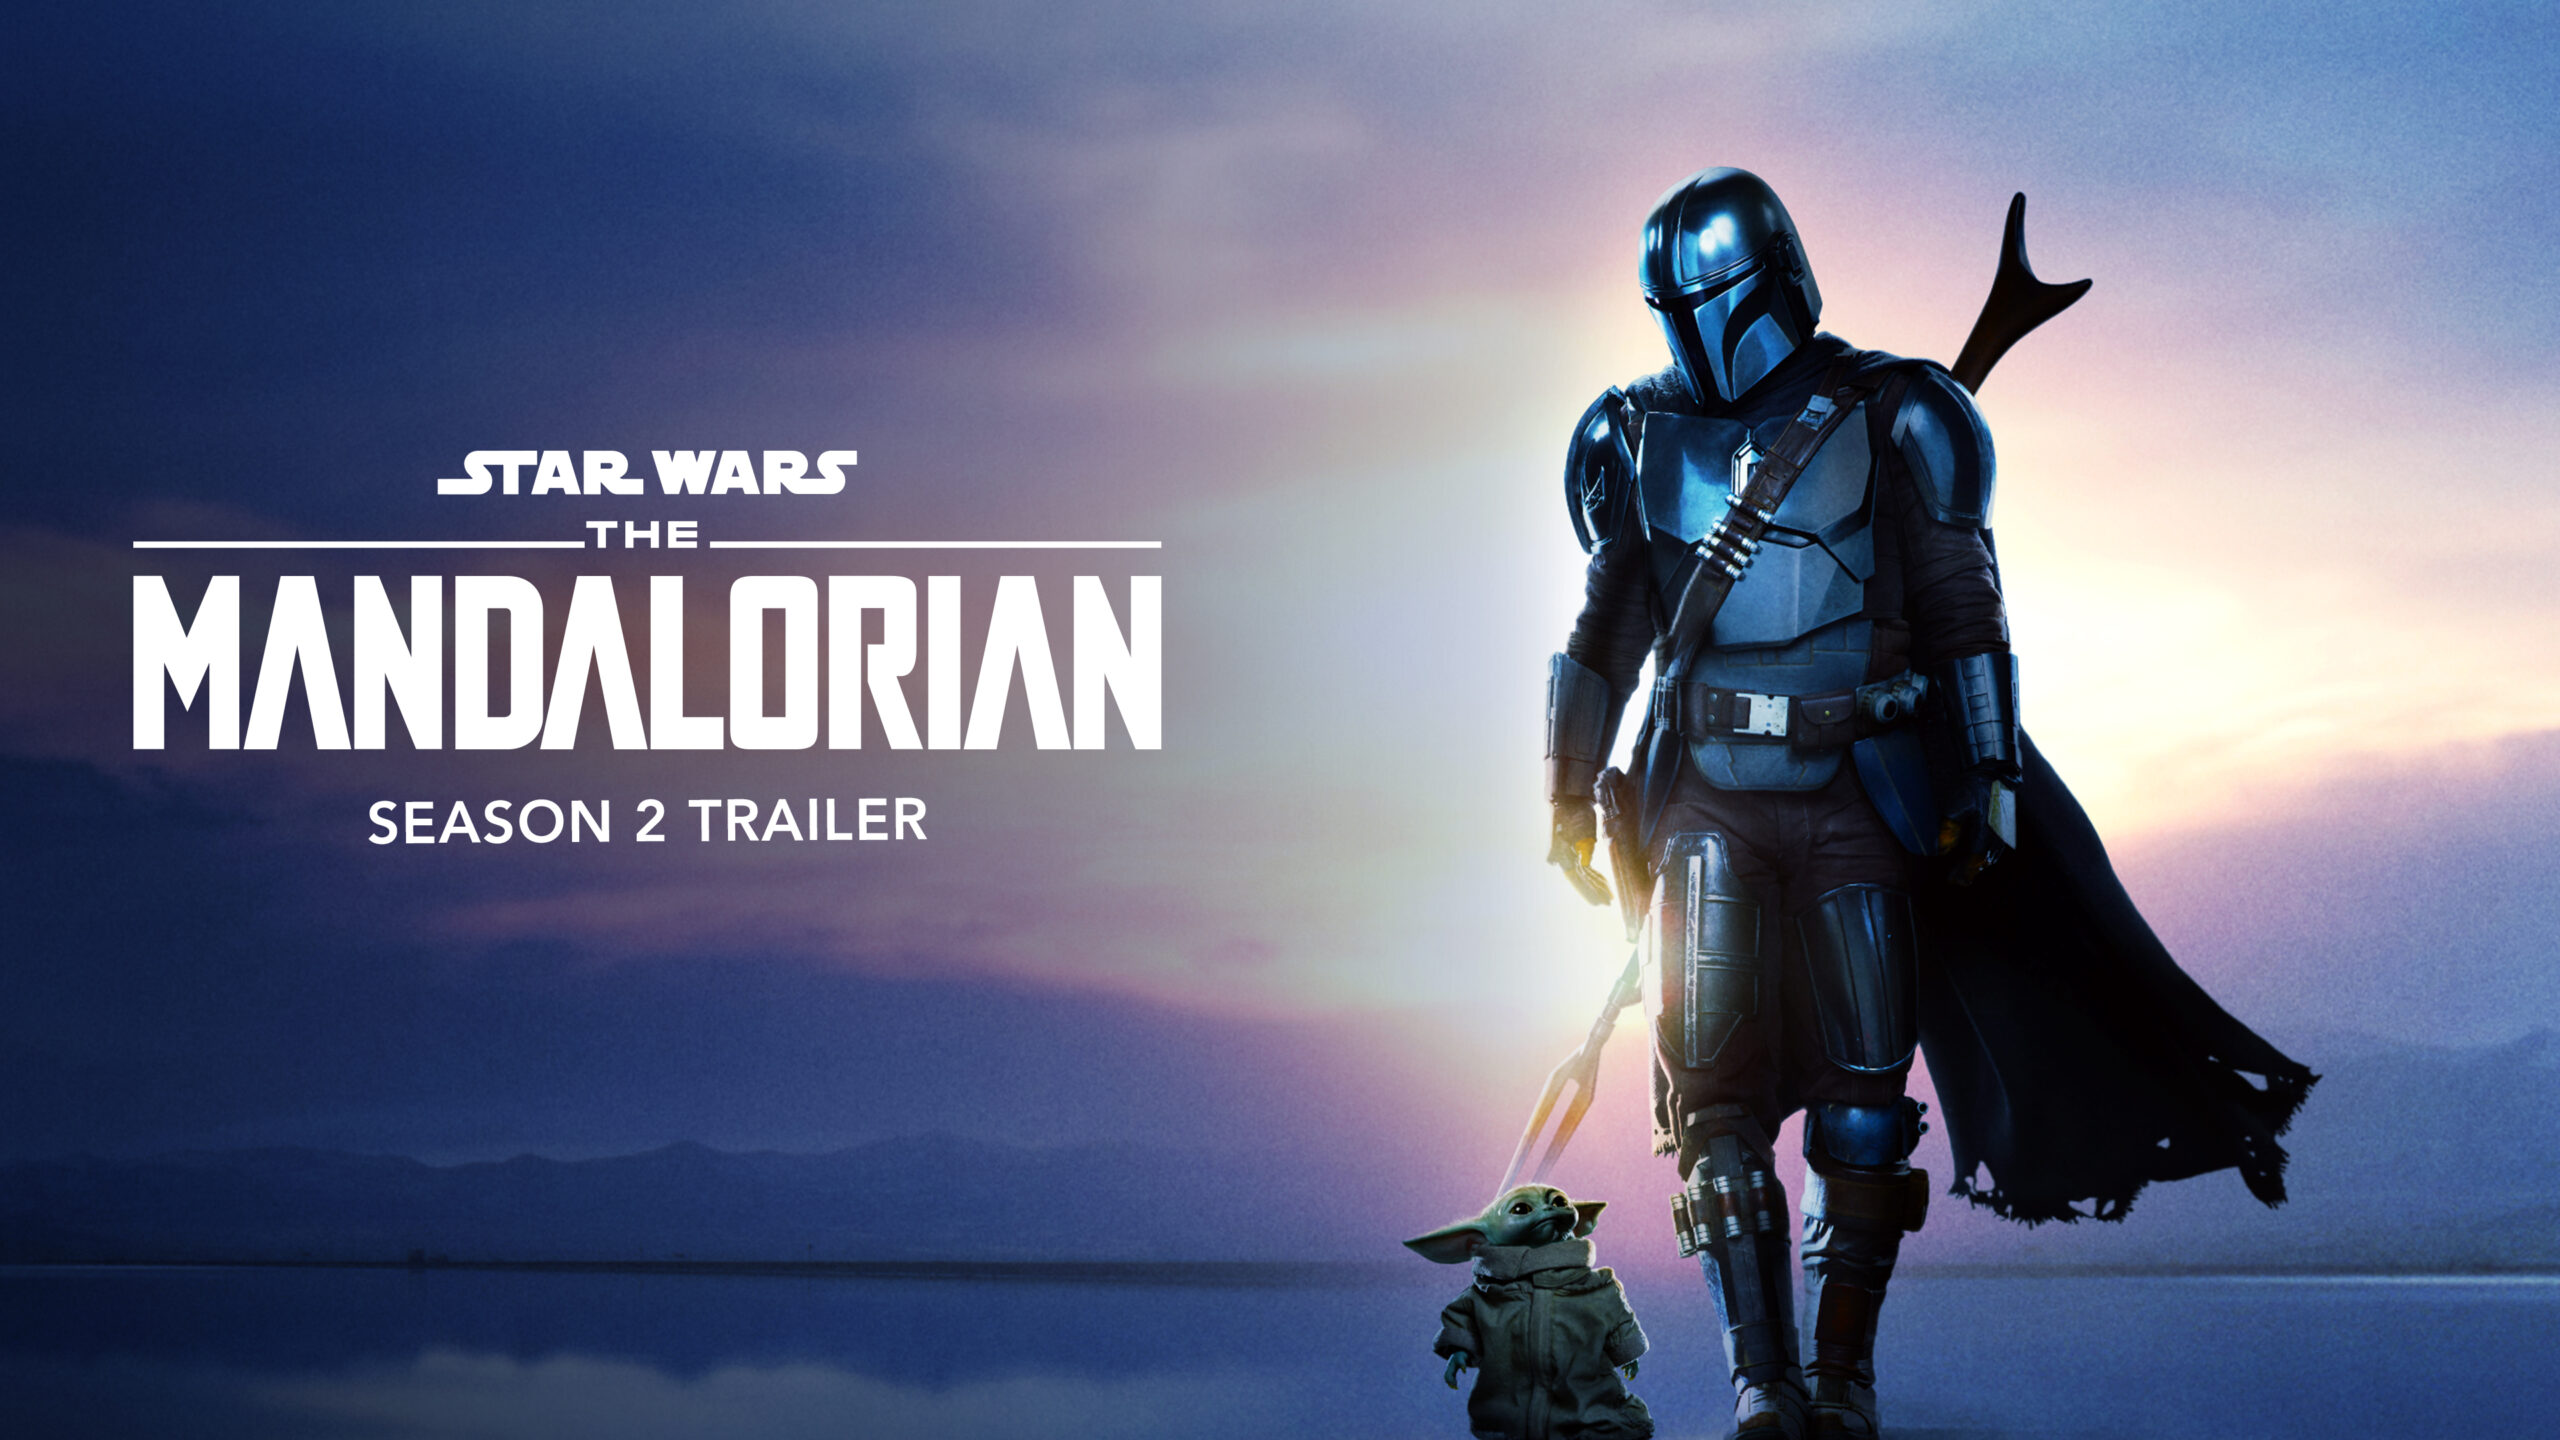 High Resolution Image Of Din Djarin And The Child From The Mandalorian Season 2 Blue Logo Jedi News